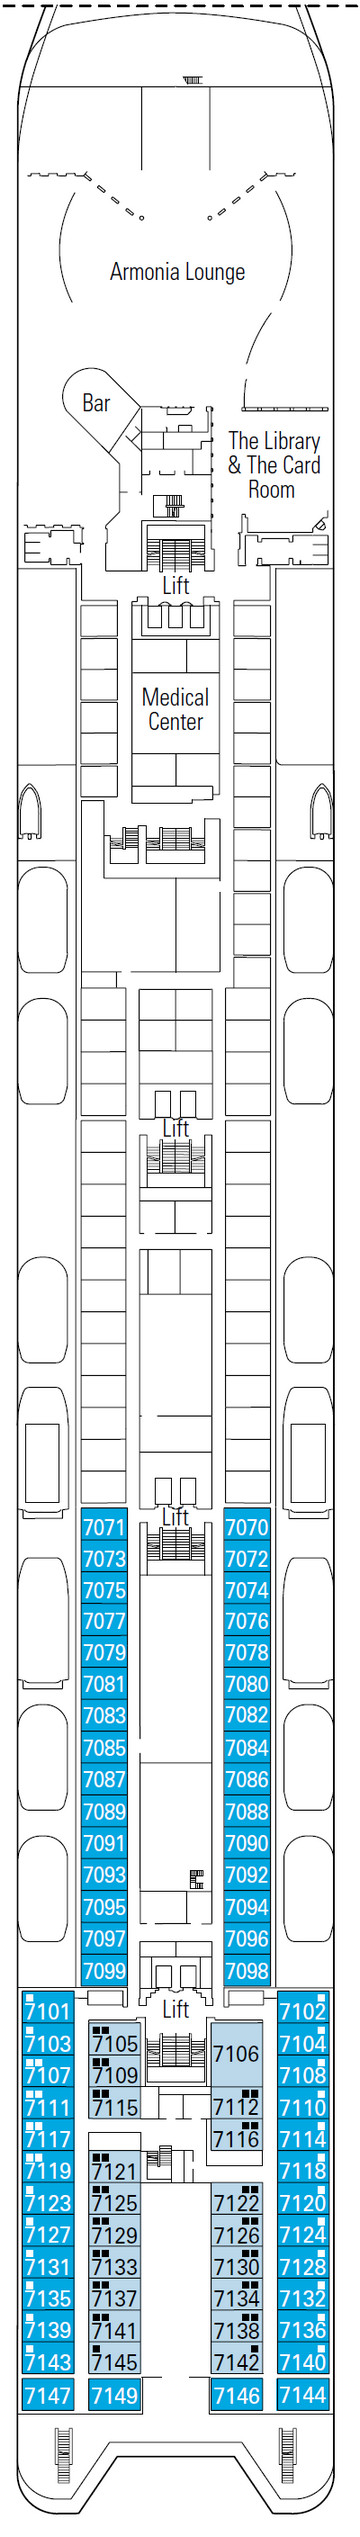 MSC Armonia Topazio Deck 7 layout